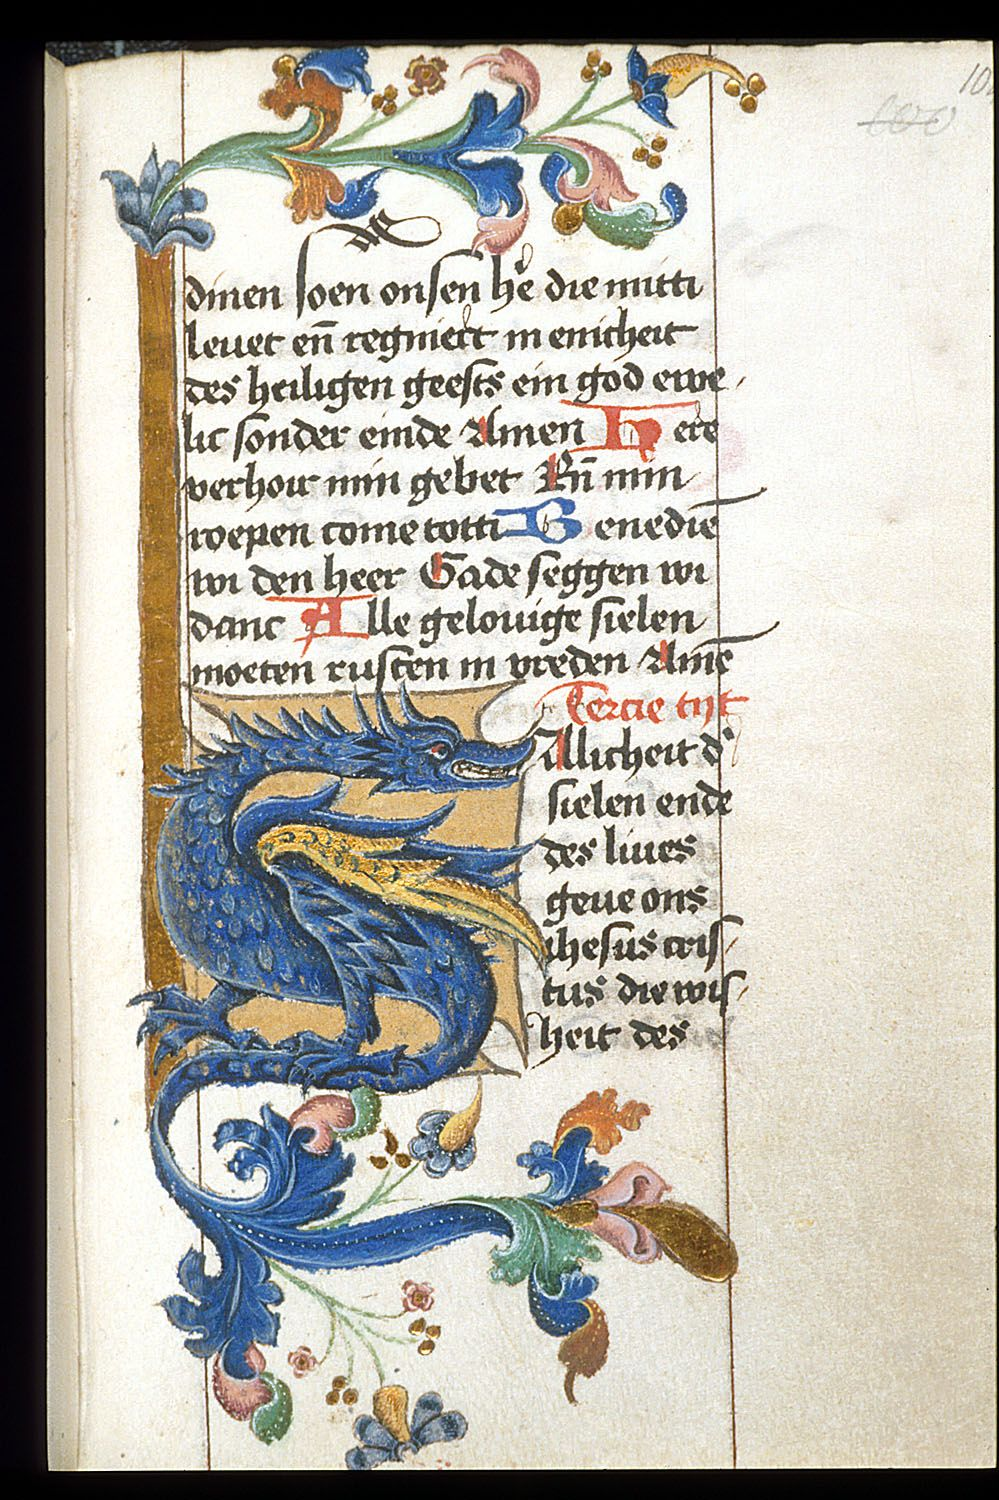 Description: Zoomorphic initial of a dragon.  Origin: Netherlands, N. or Germany, N. W. (Lower Rhineland)   Harley 1662 f. 104 Zoomorphic initial  Title Book of Hours, unidentified use Origin Netherlands, N. or Germany, N. W. (Lower Rhineland) Date c. 1463-1476 Language Dutch Script Gothic cursive Artists Attributed to the circle of the Master of the Berlin Passion (see Marrow 1978). http://www.bl.uk/catalogues/illuminatedmanuscripts/ILLUMIN.ASP?Size=mid&IllID=19542